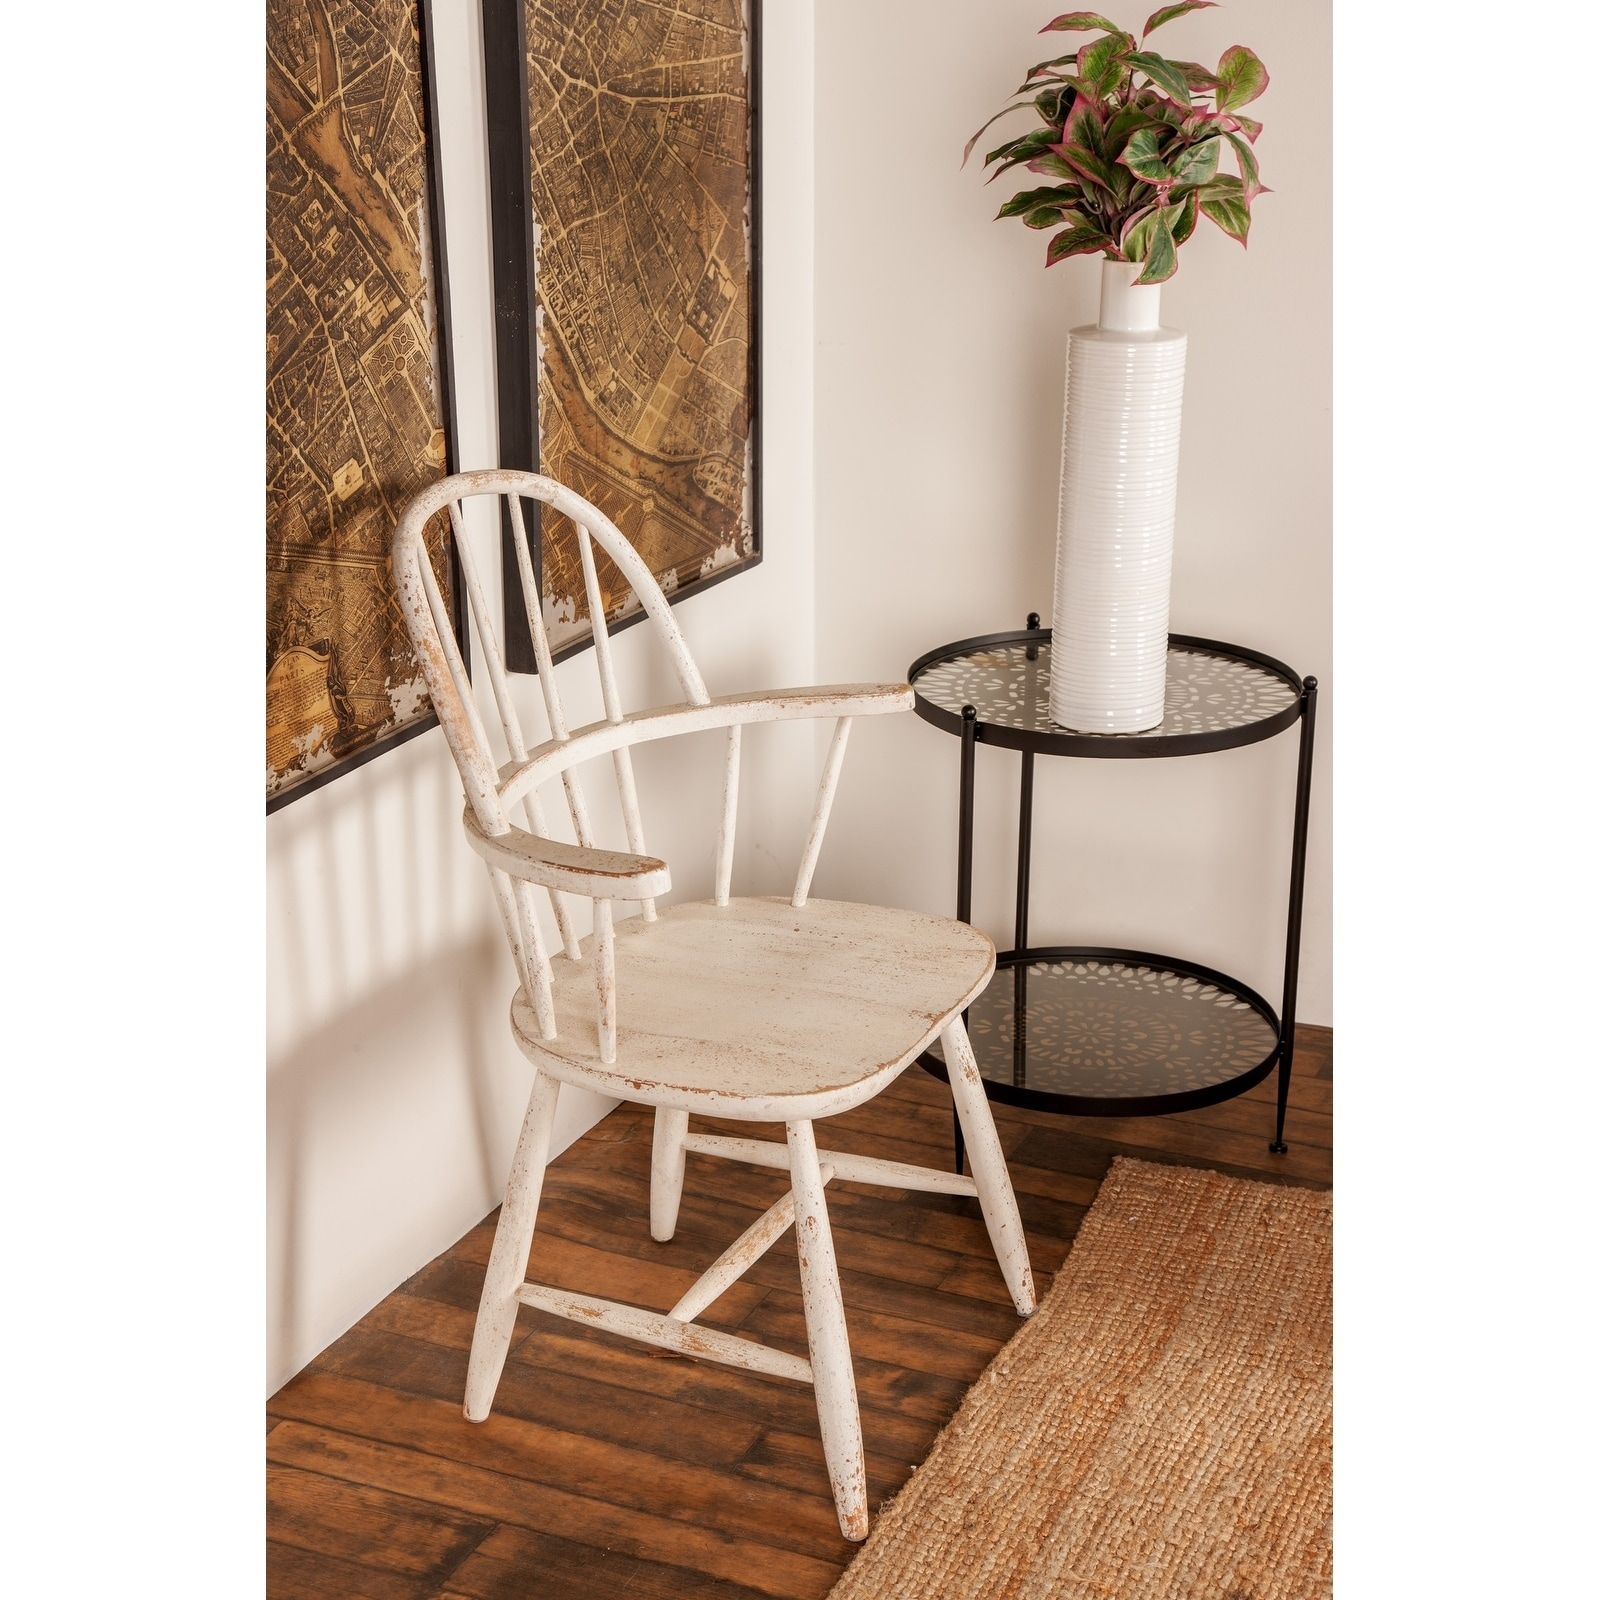 Shop Farmhouse Distressed White Wooden Chair By Studio 350   Free Shipping  Today   Overstock.com   20444798